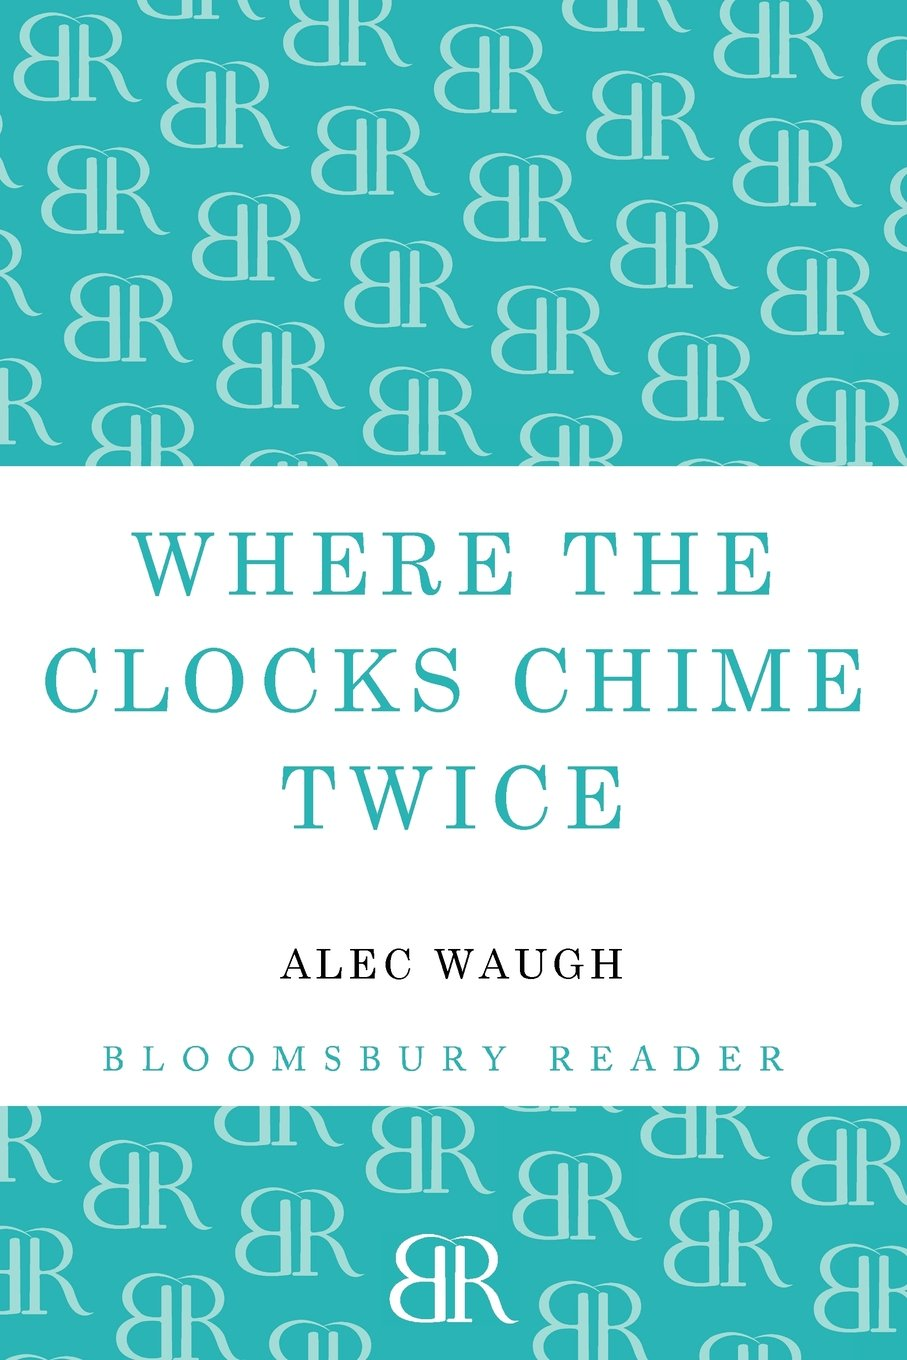 Where the clock chimes twice by Alech Waugh | © Bloomsbury Reader